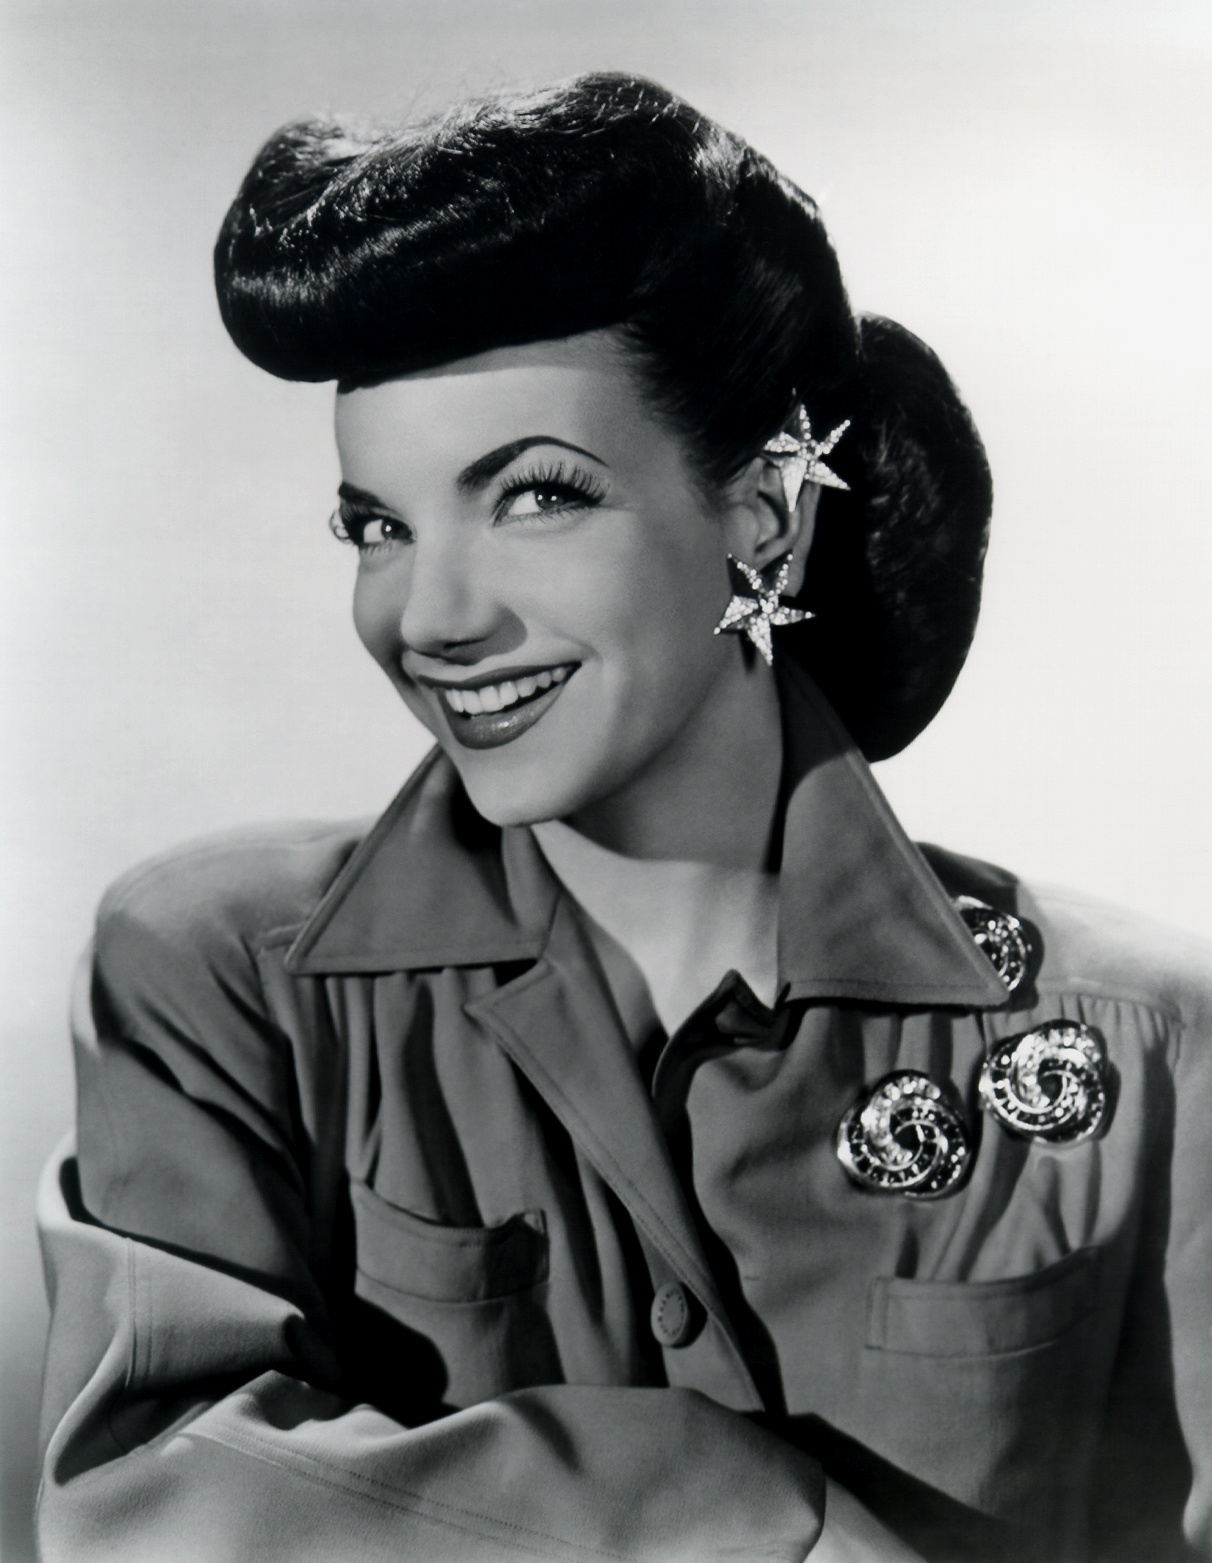 Actress and singer Carmen Miranda became the greatest popularizer of Brazilian crossover music via film and Broadway performances in the late 1930s-mid 1940s. She is pictured here circa the 1940s without her iconic costumes and jewelry.